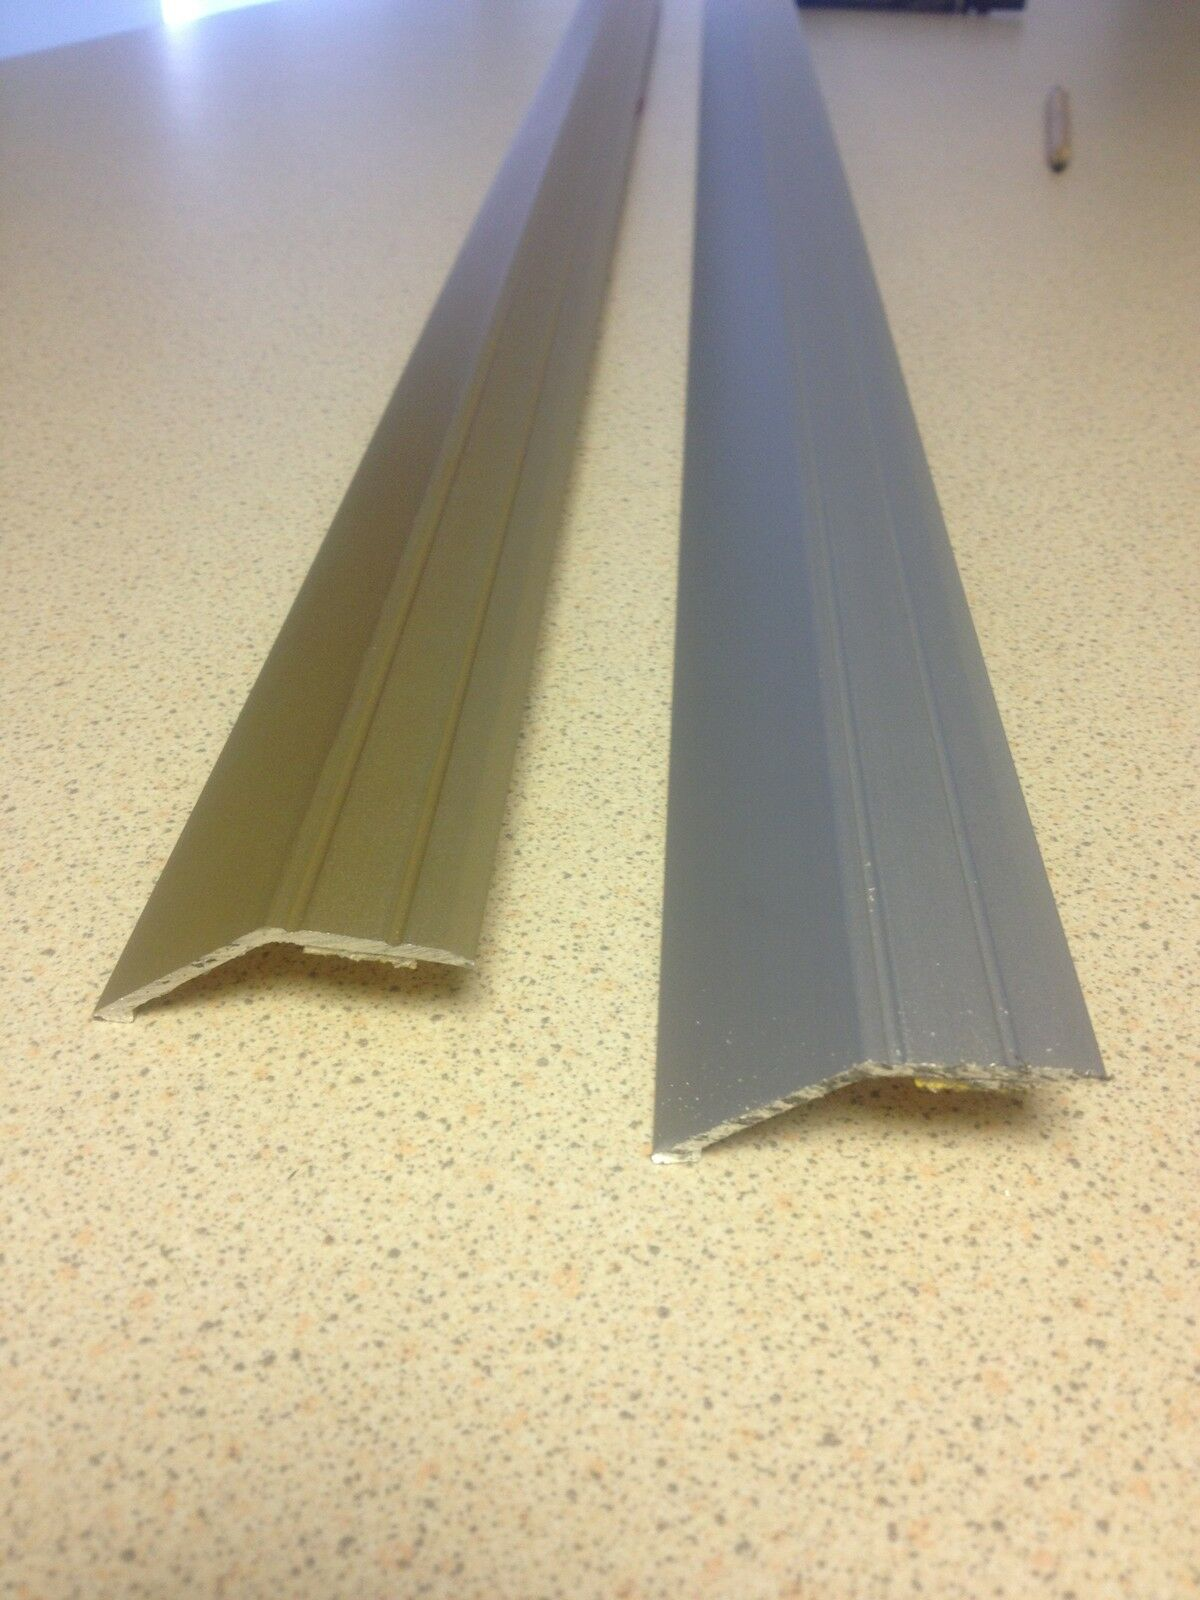 1800mm Stikatak Self Adhesive 8mm Ramp Threshold For Laminate To Vinyl Floors 1 Of See More